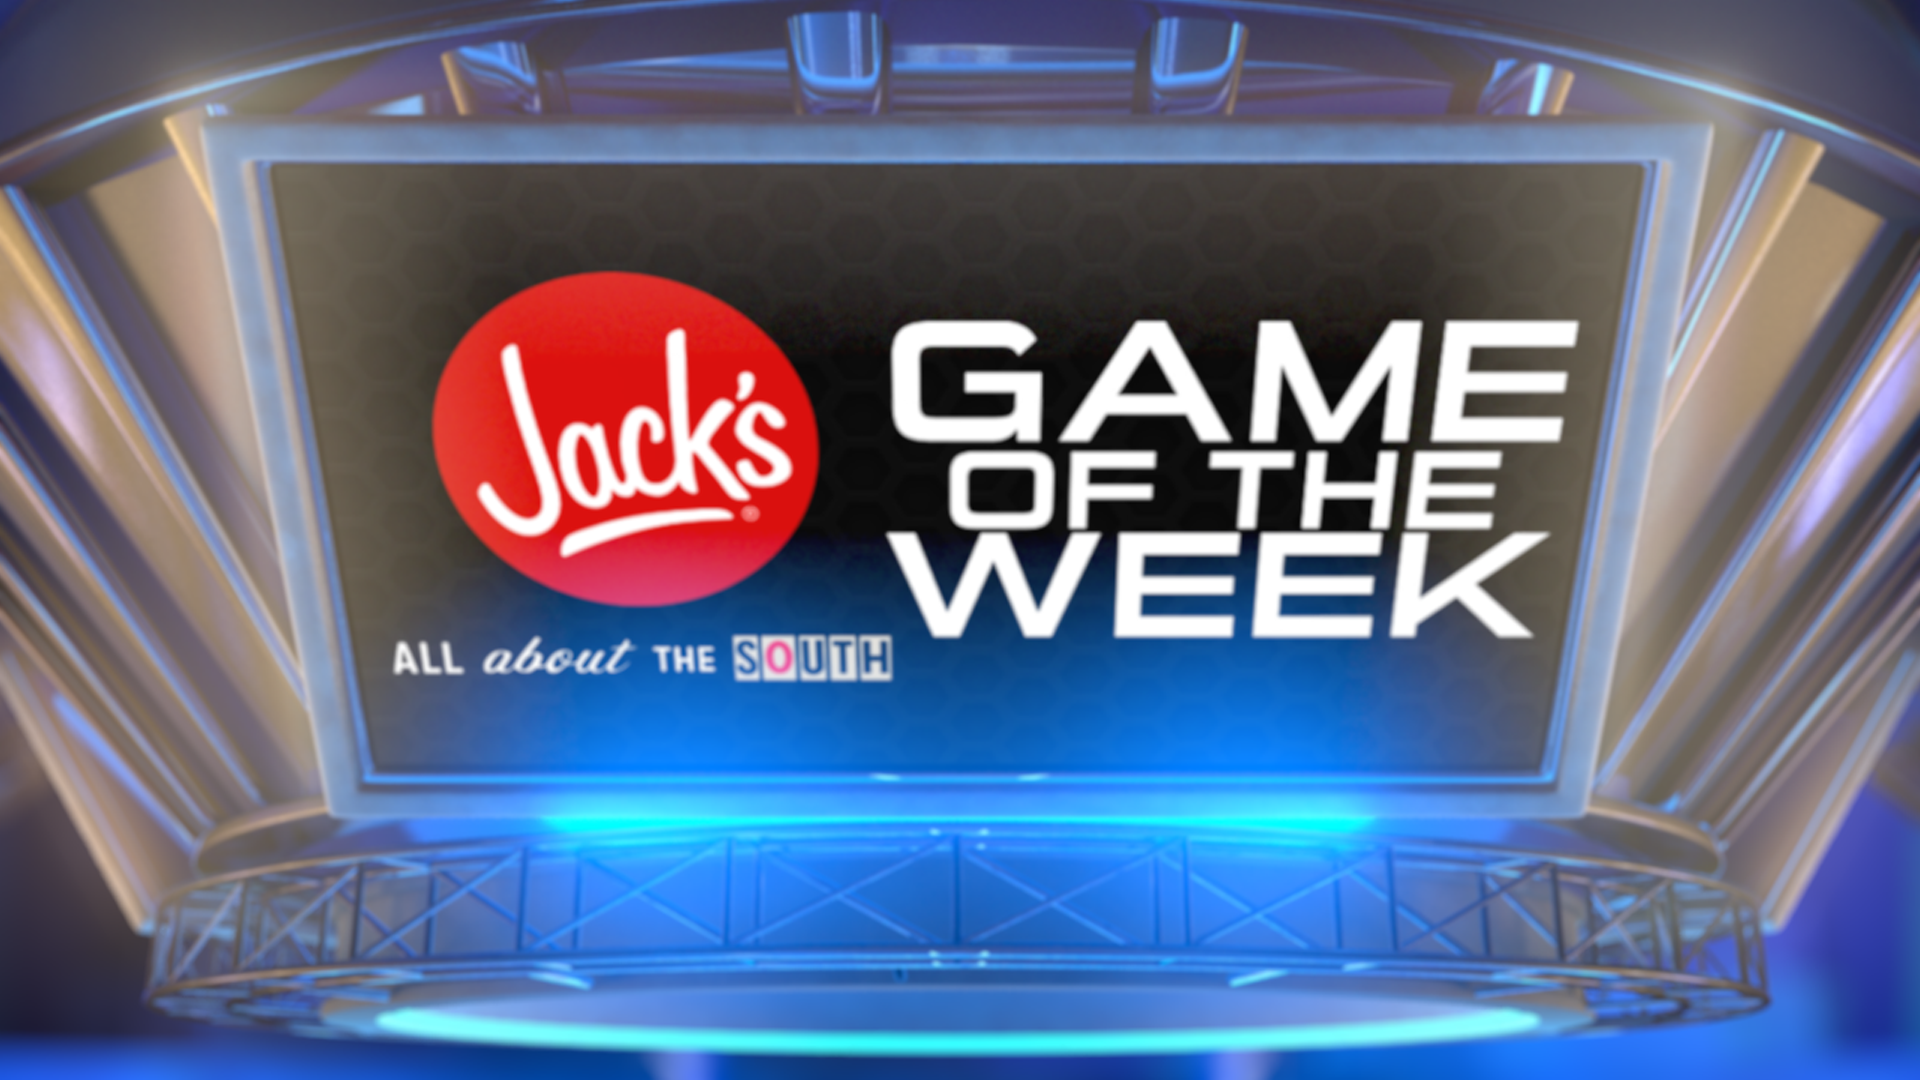 Sheldon's Game of the Week